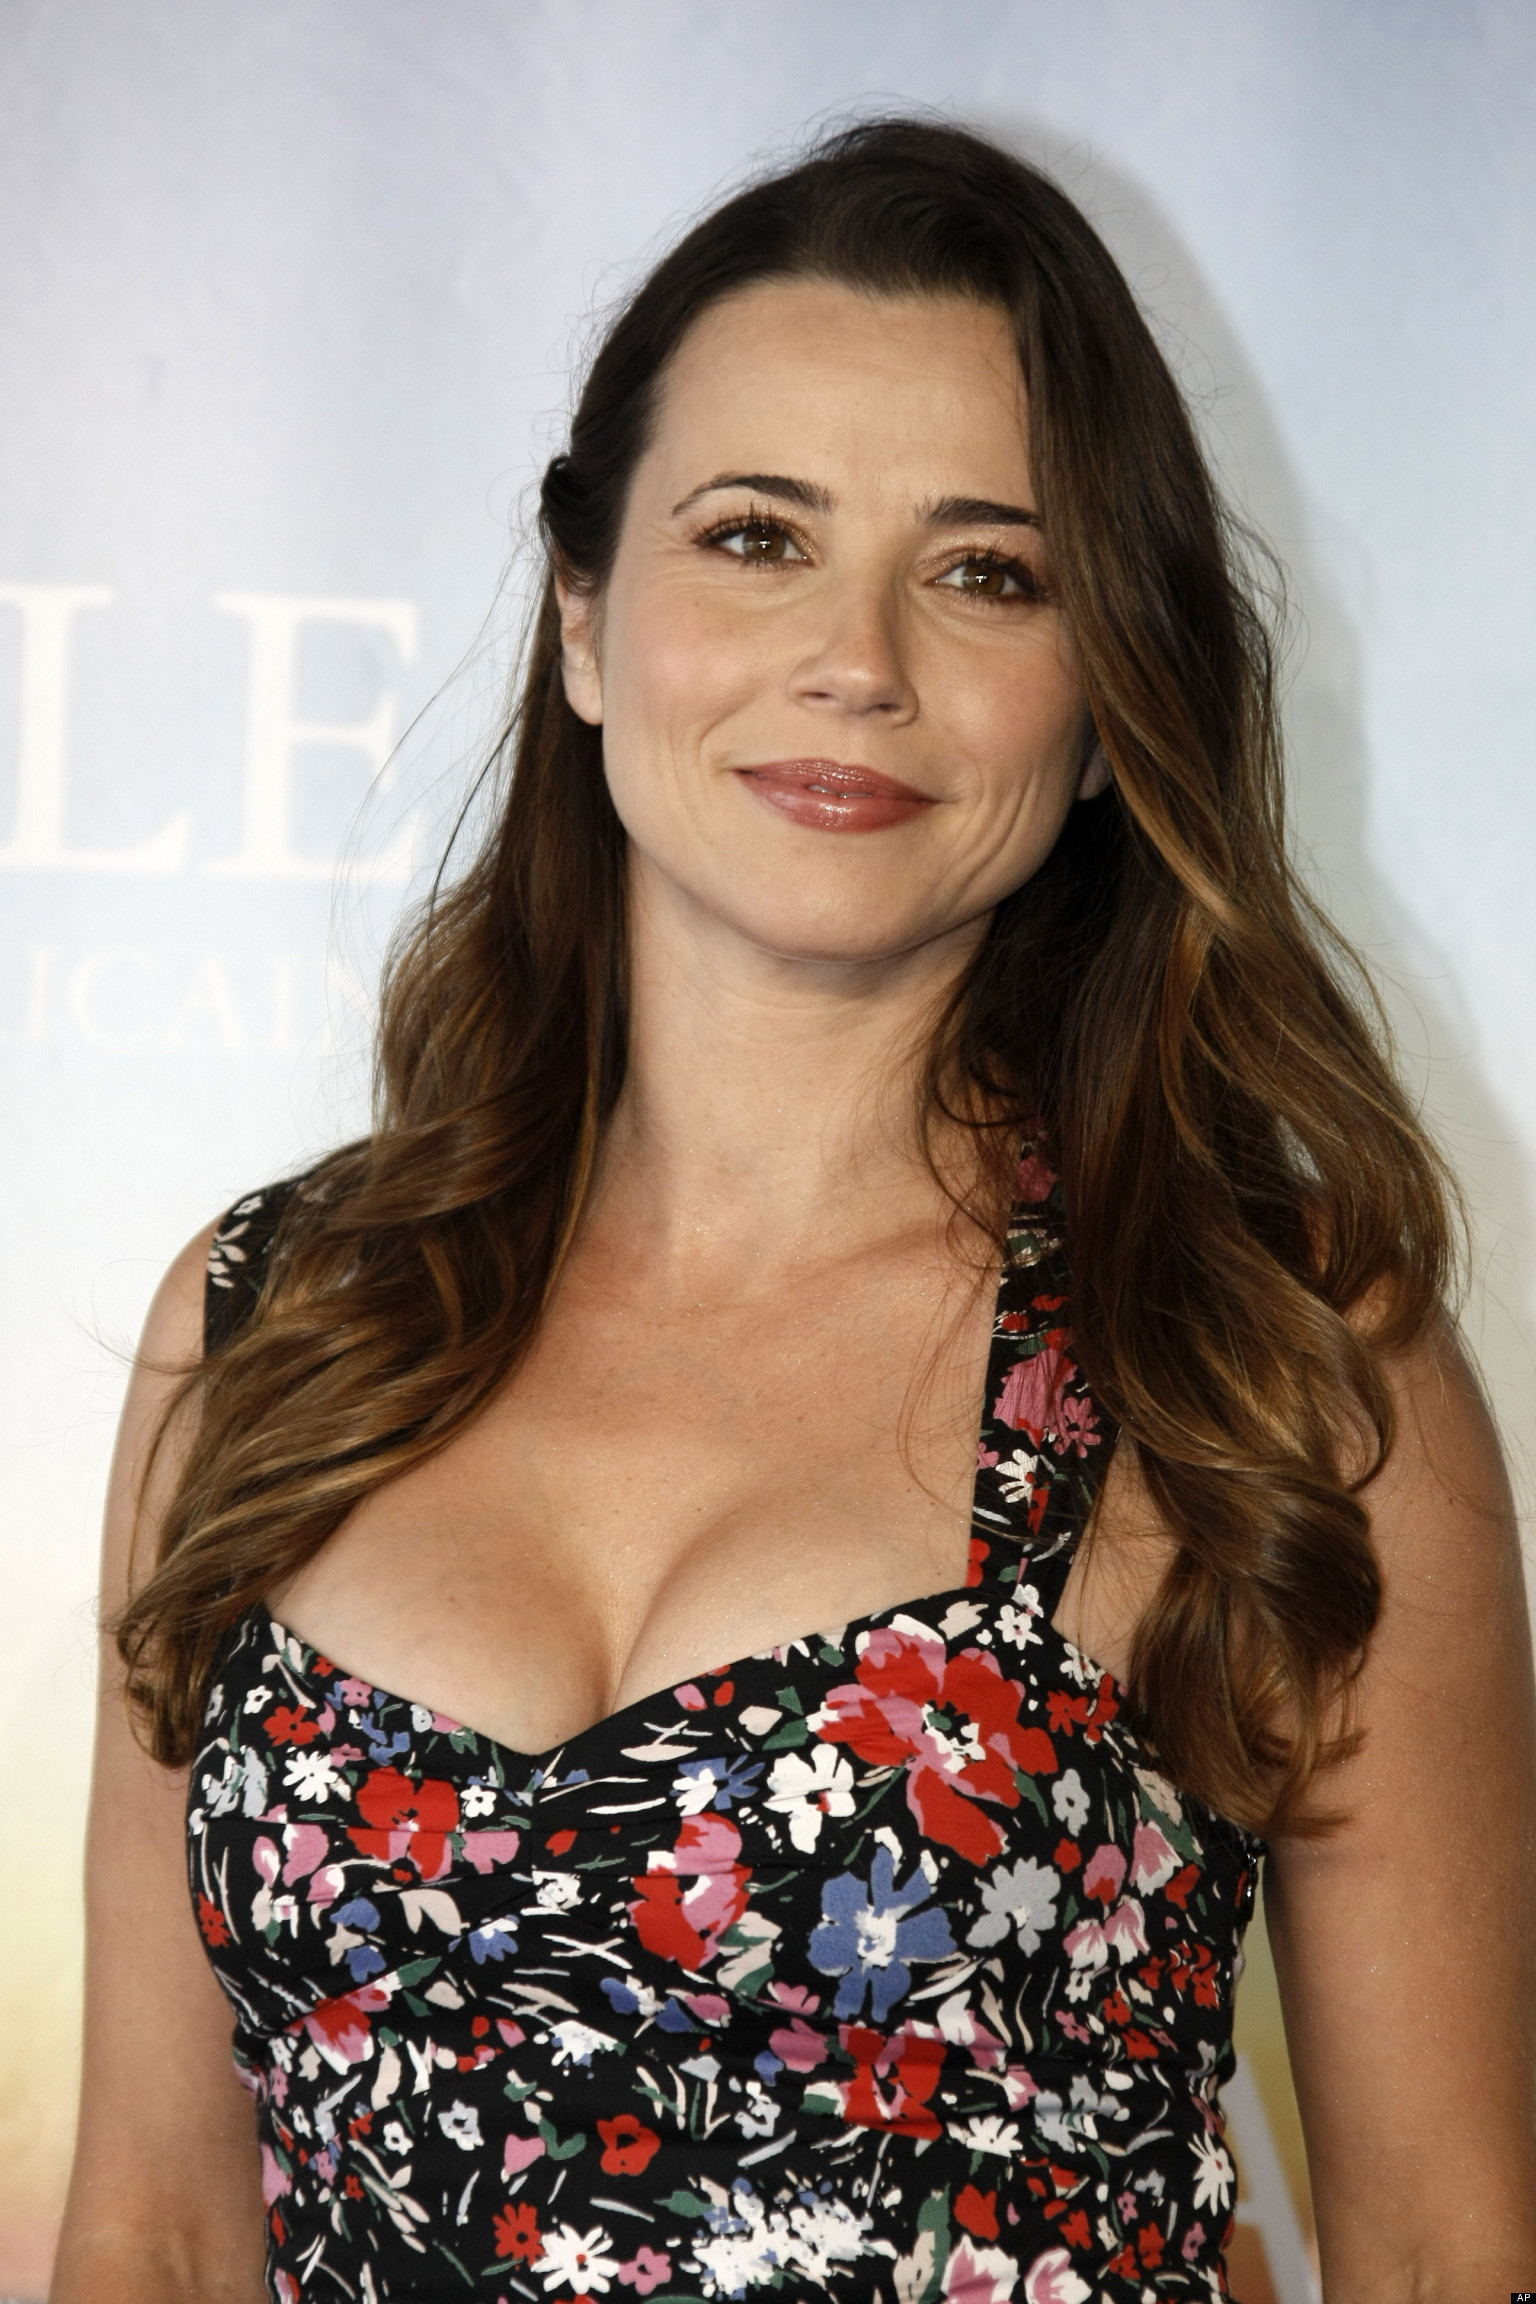 Linda Cardellini  Backgrounds, Compatible - PC, Mobile, Gadgets| 1536x2304 px